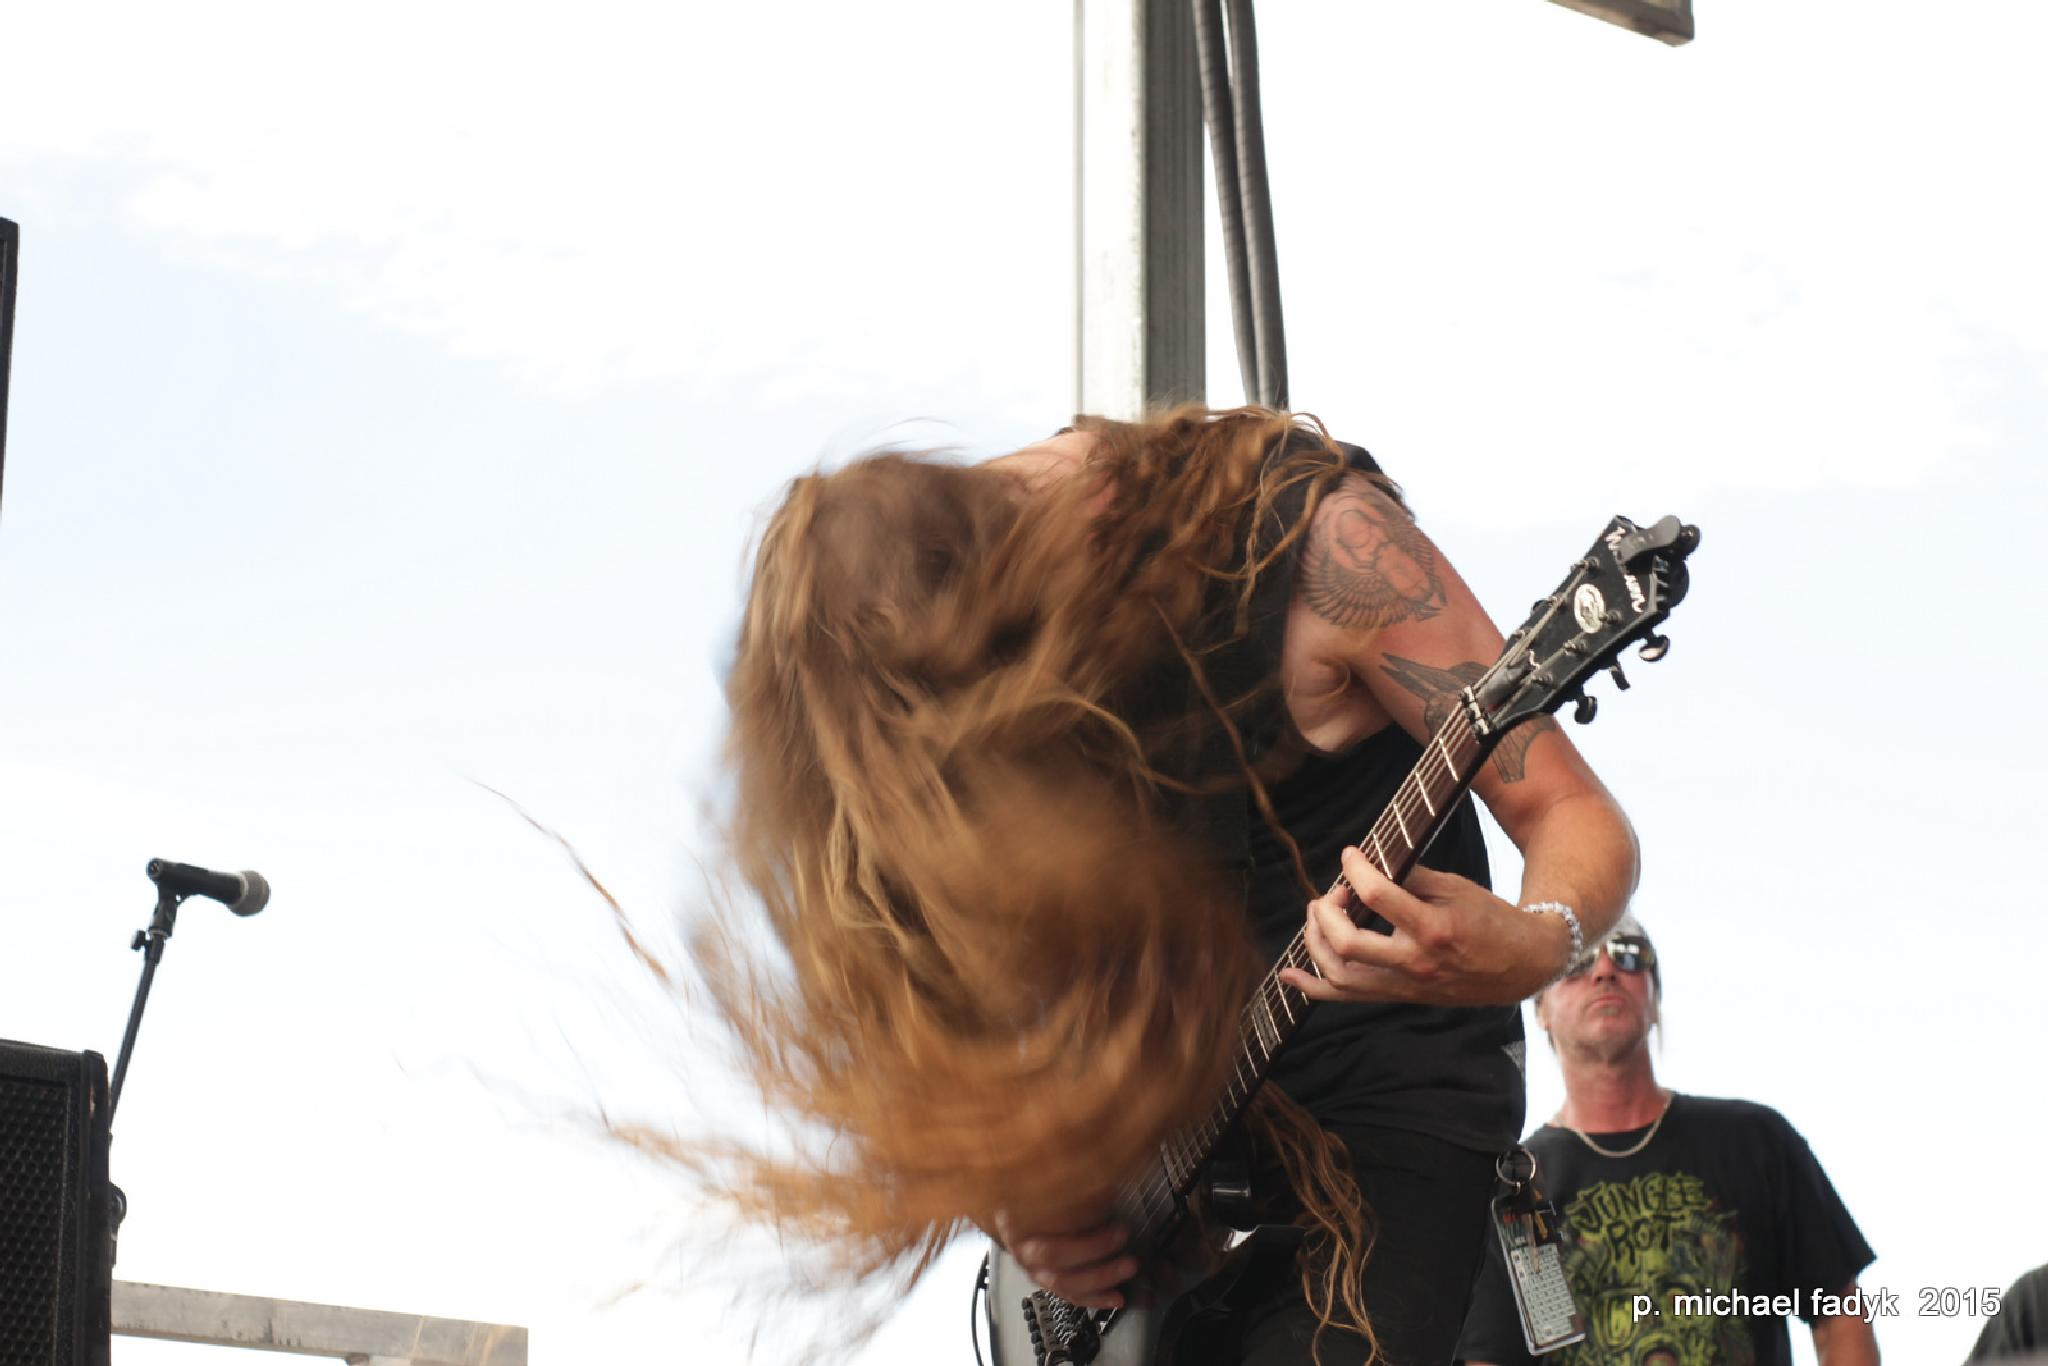 mayhem fest 2015 6 by P. Michael Fadyk